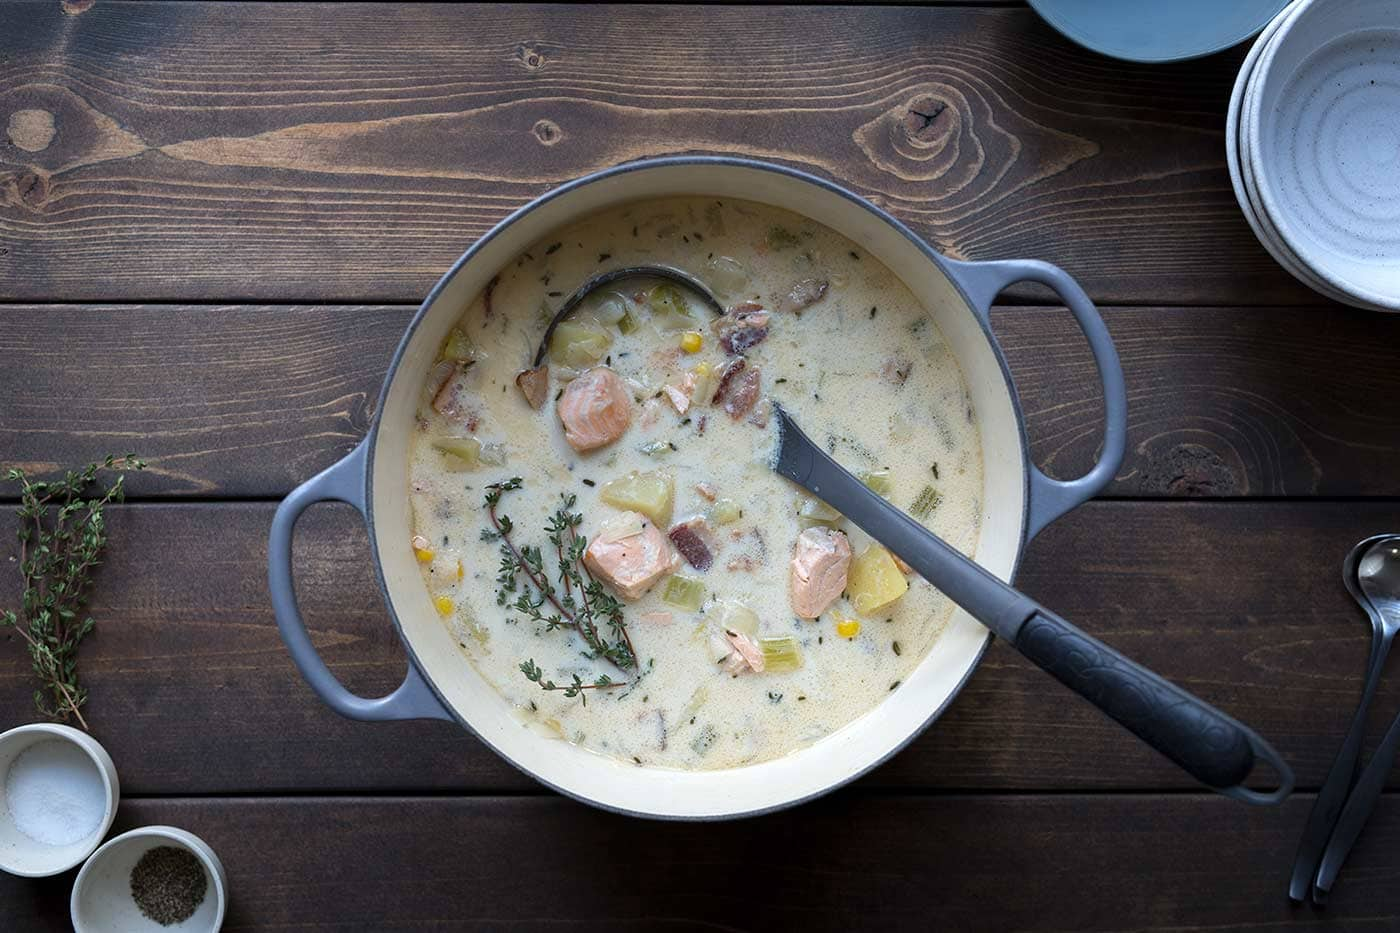 Salmon chowder in a large pot showcasing some of the various ingredients, including potatoes and bacon.